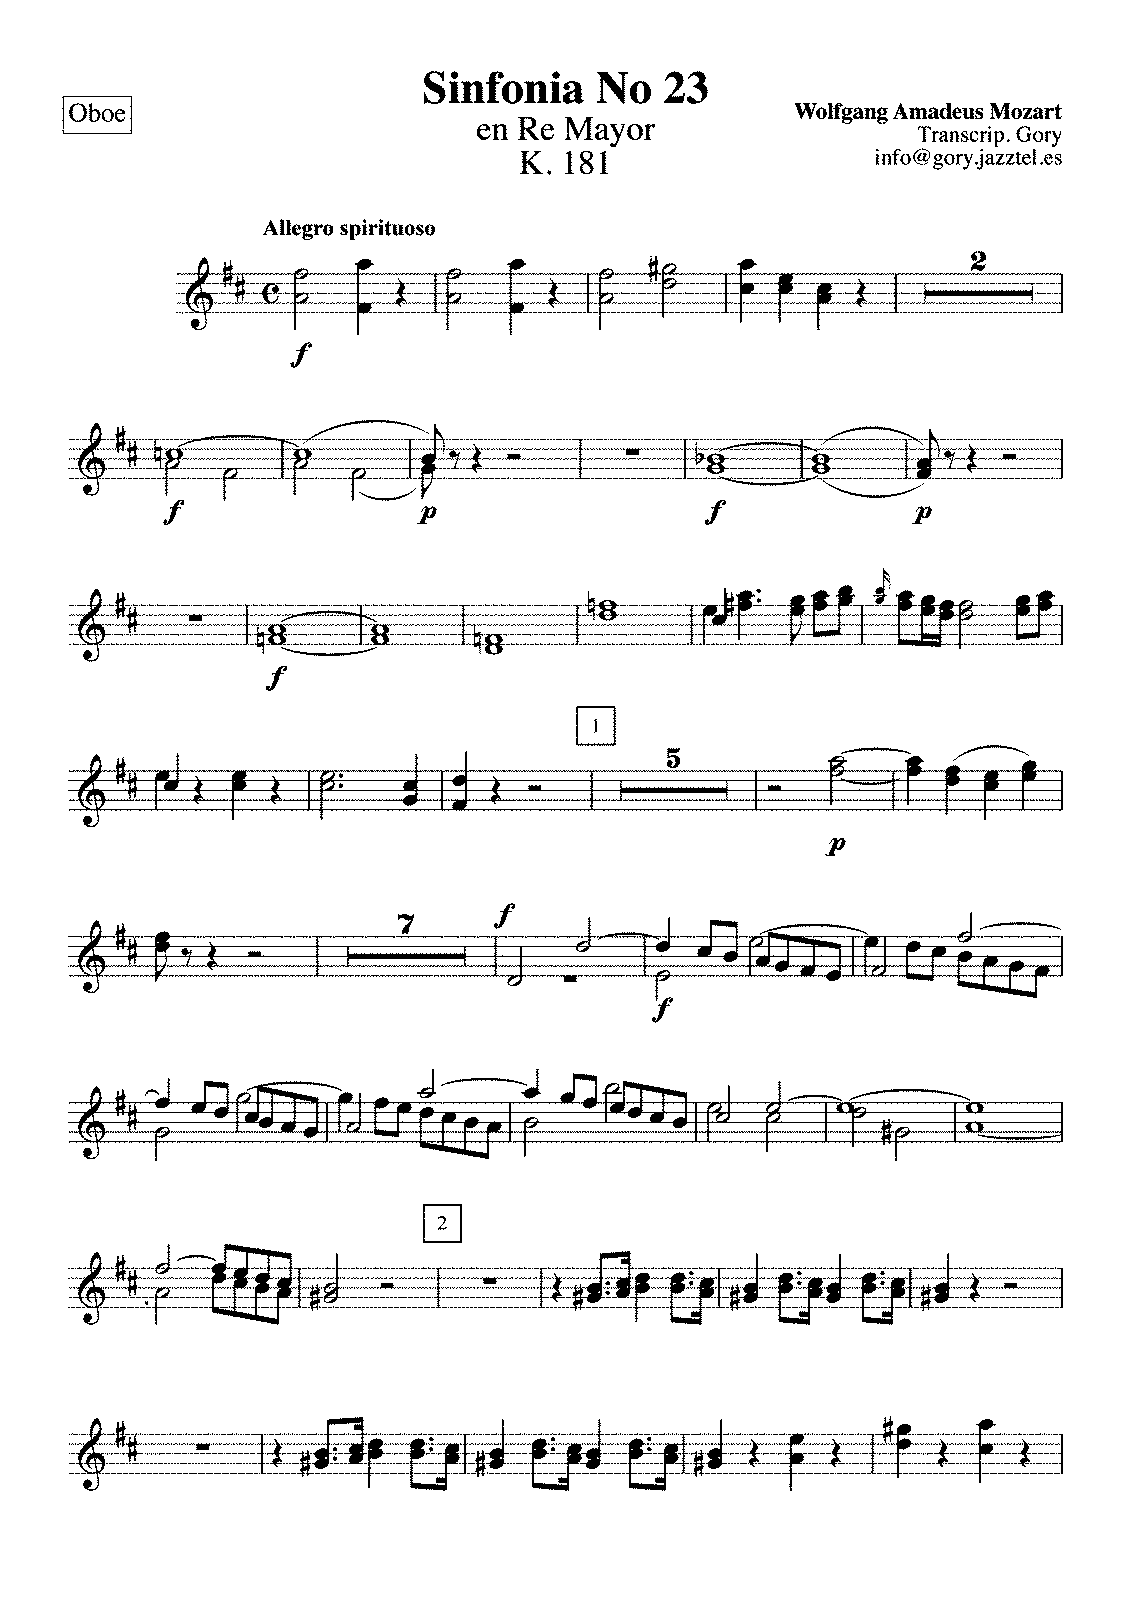 PMLP01542-Sinfonia nº 23 en Re mayor - Oboe.pdf